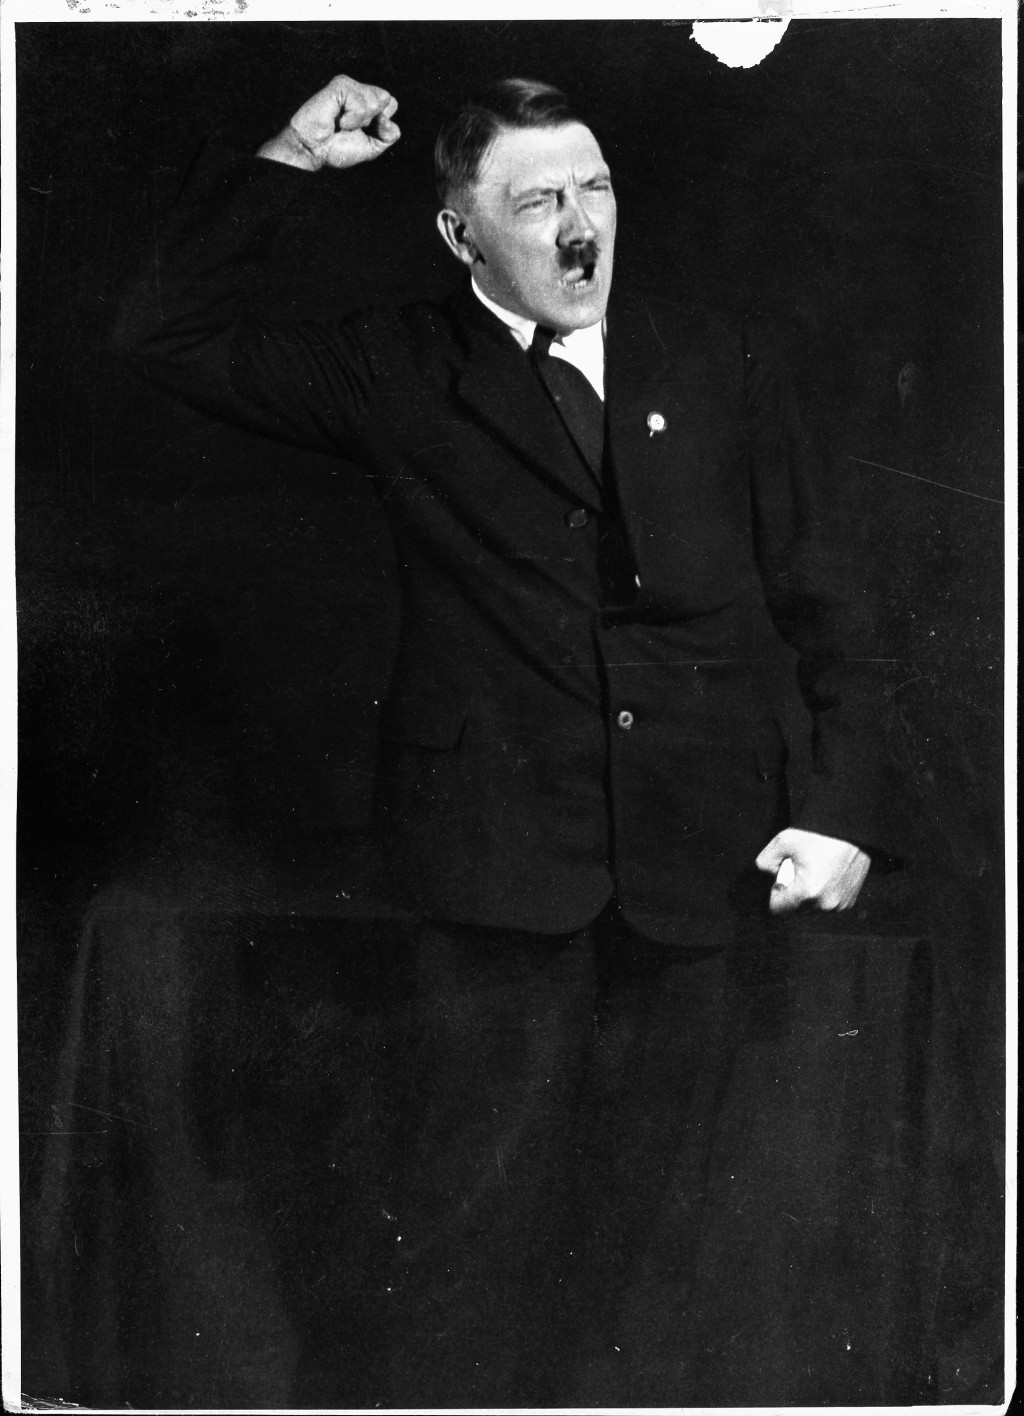 Hitler rehearsing his oratory. Hitler carefully cultivated his image as the Nazi Party leader as he came to see the propagandistic ... [LCID: p509]